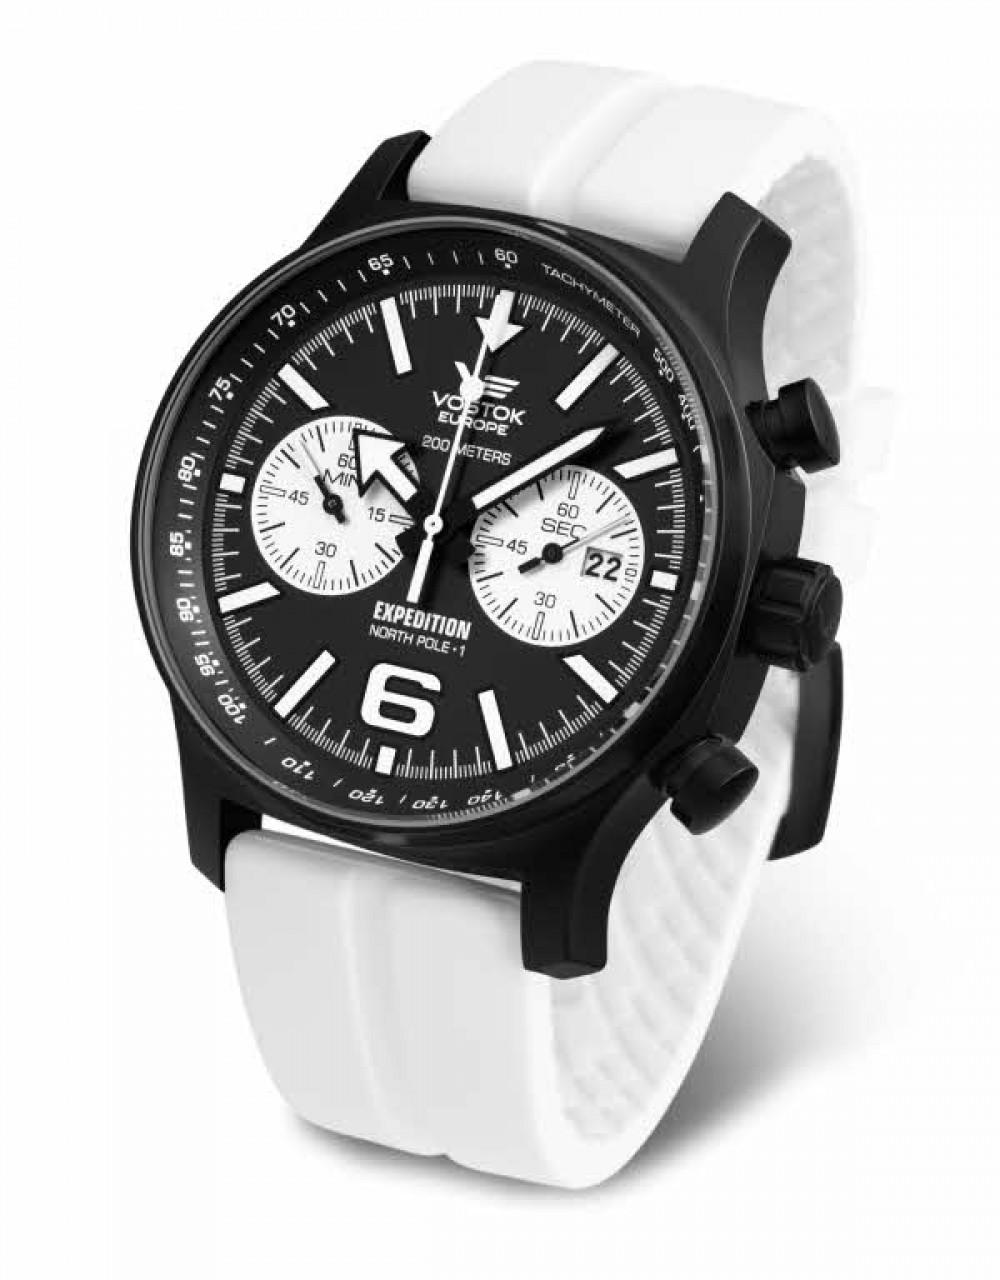 Vostok-Europe Expedition North Pole 6S21-5954199 silikon